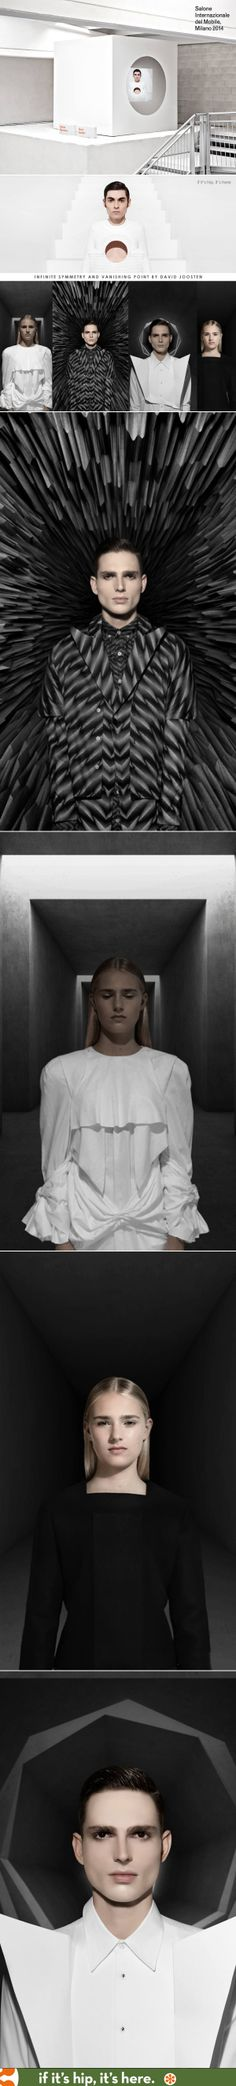 A series of animated portraits and a video that explore the relationship between symmetry and beauty by artist David Joosten.